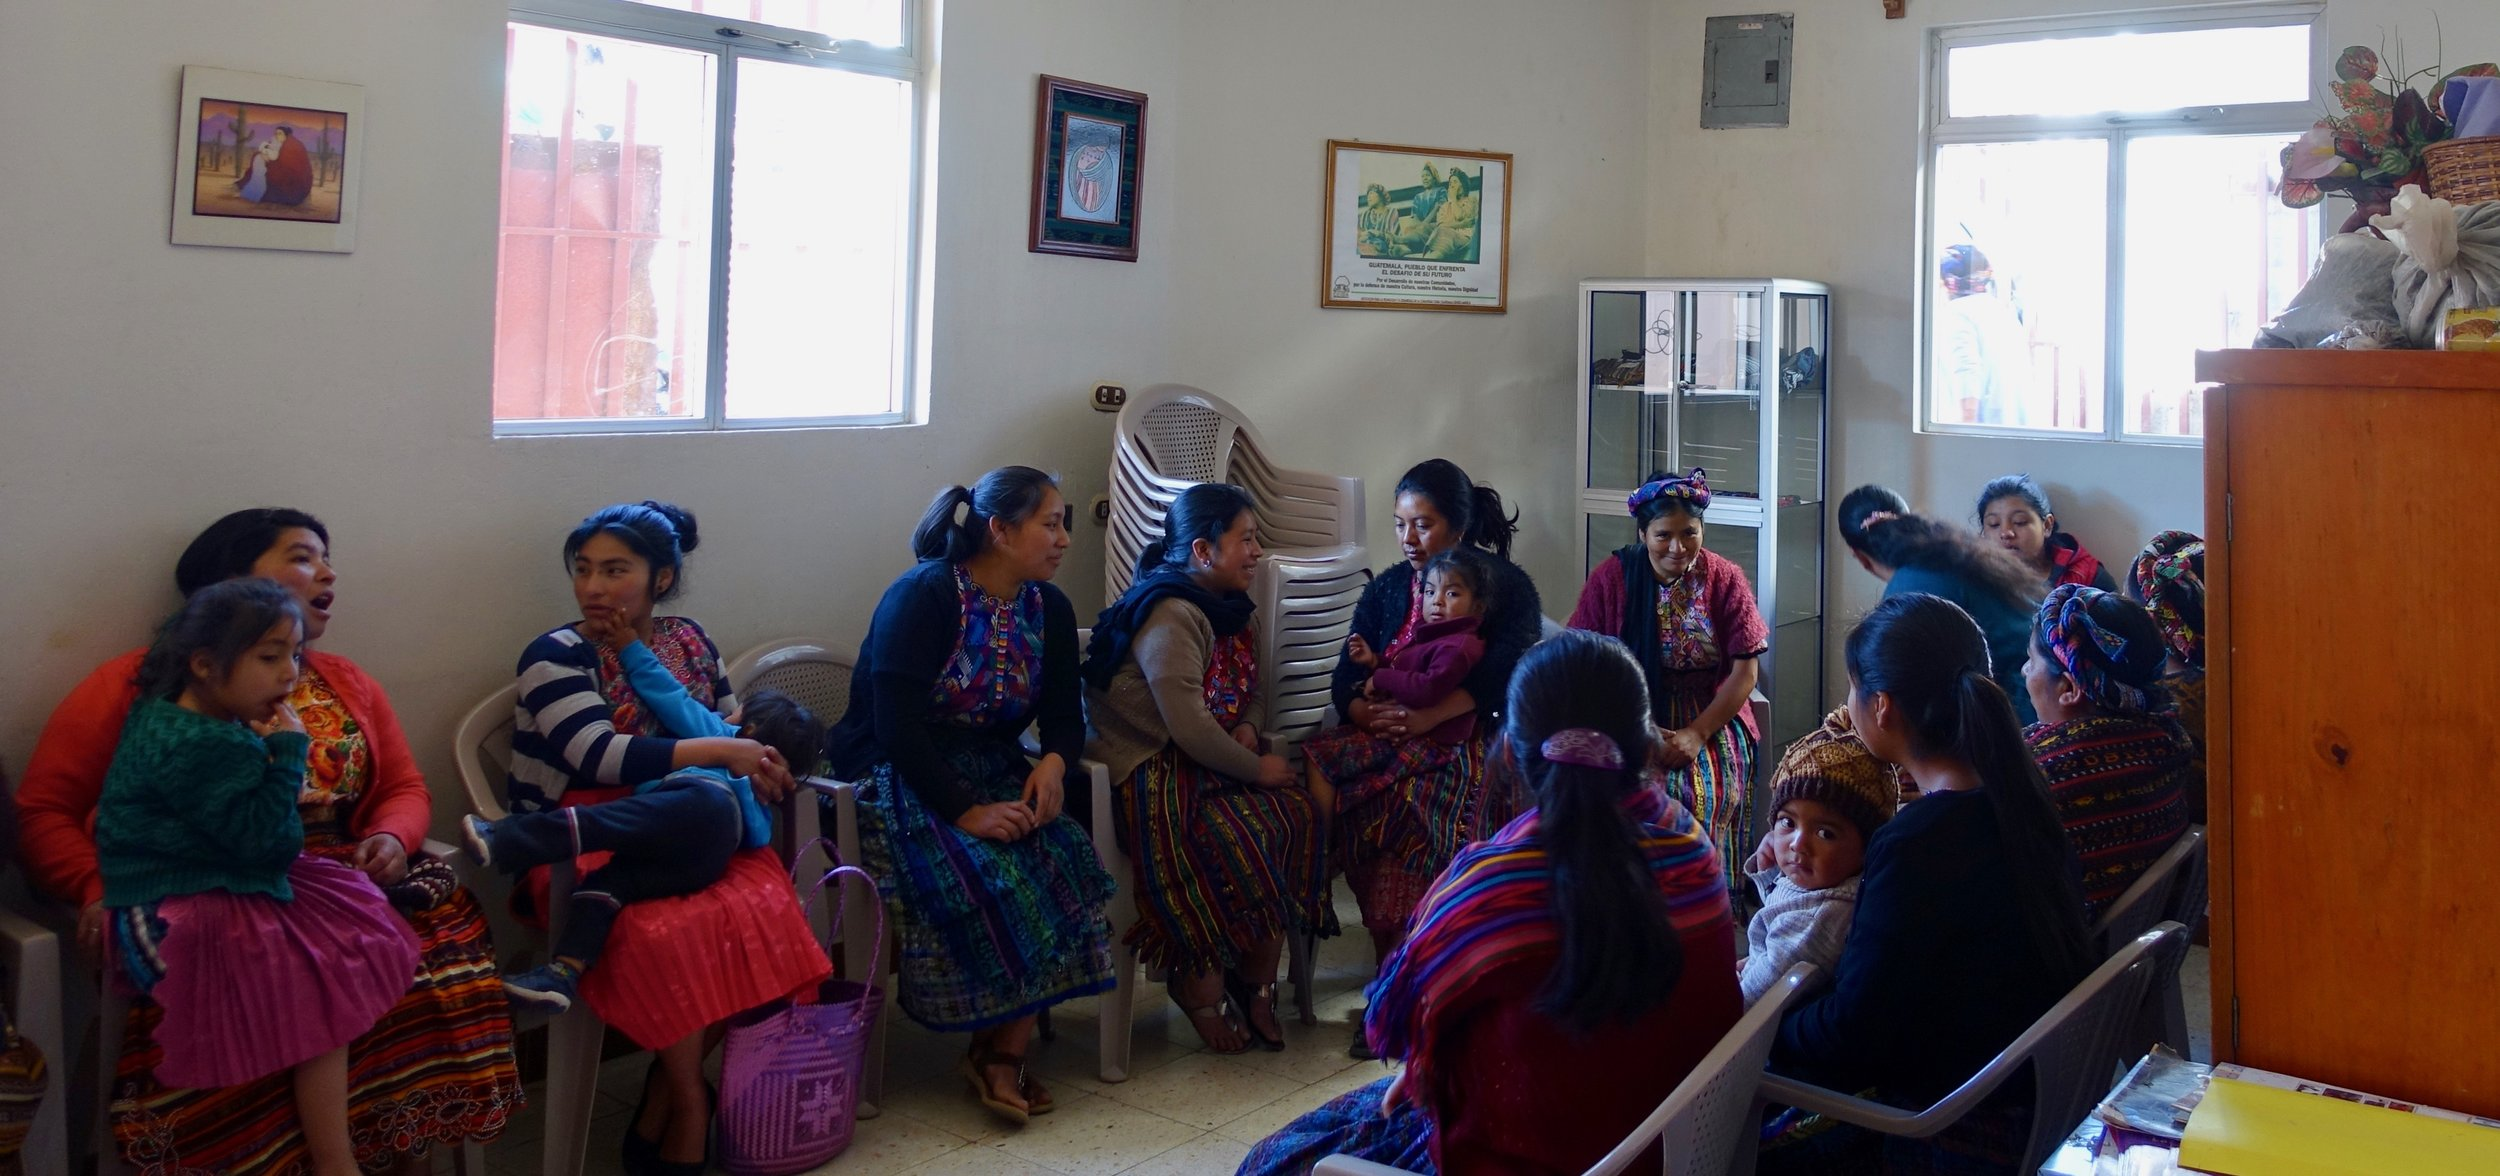 Patients wait to be seen by the midwives at ACAM